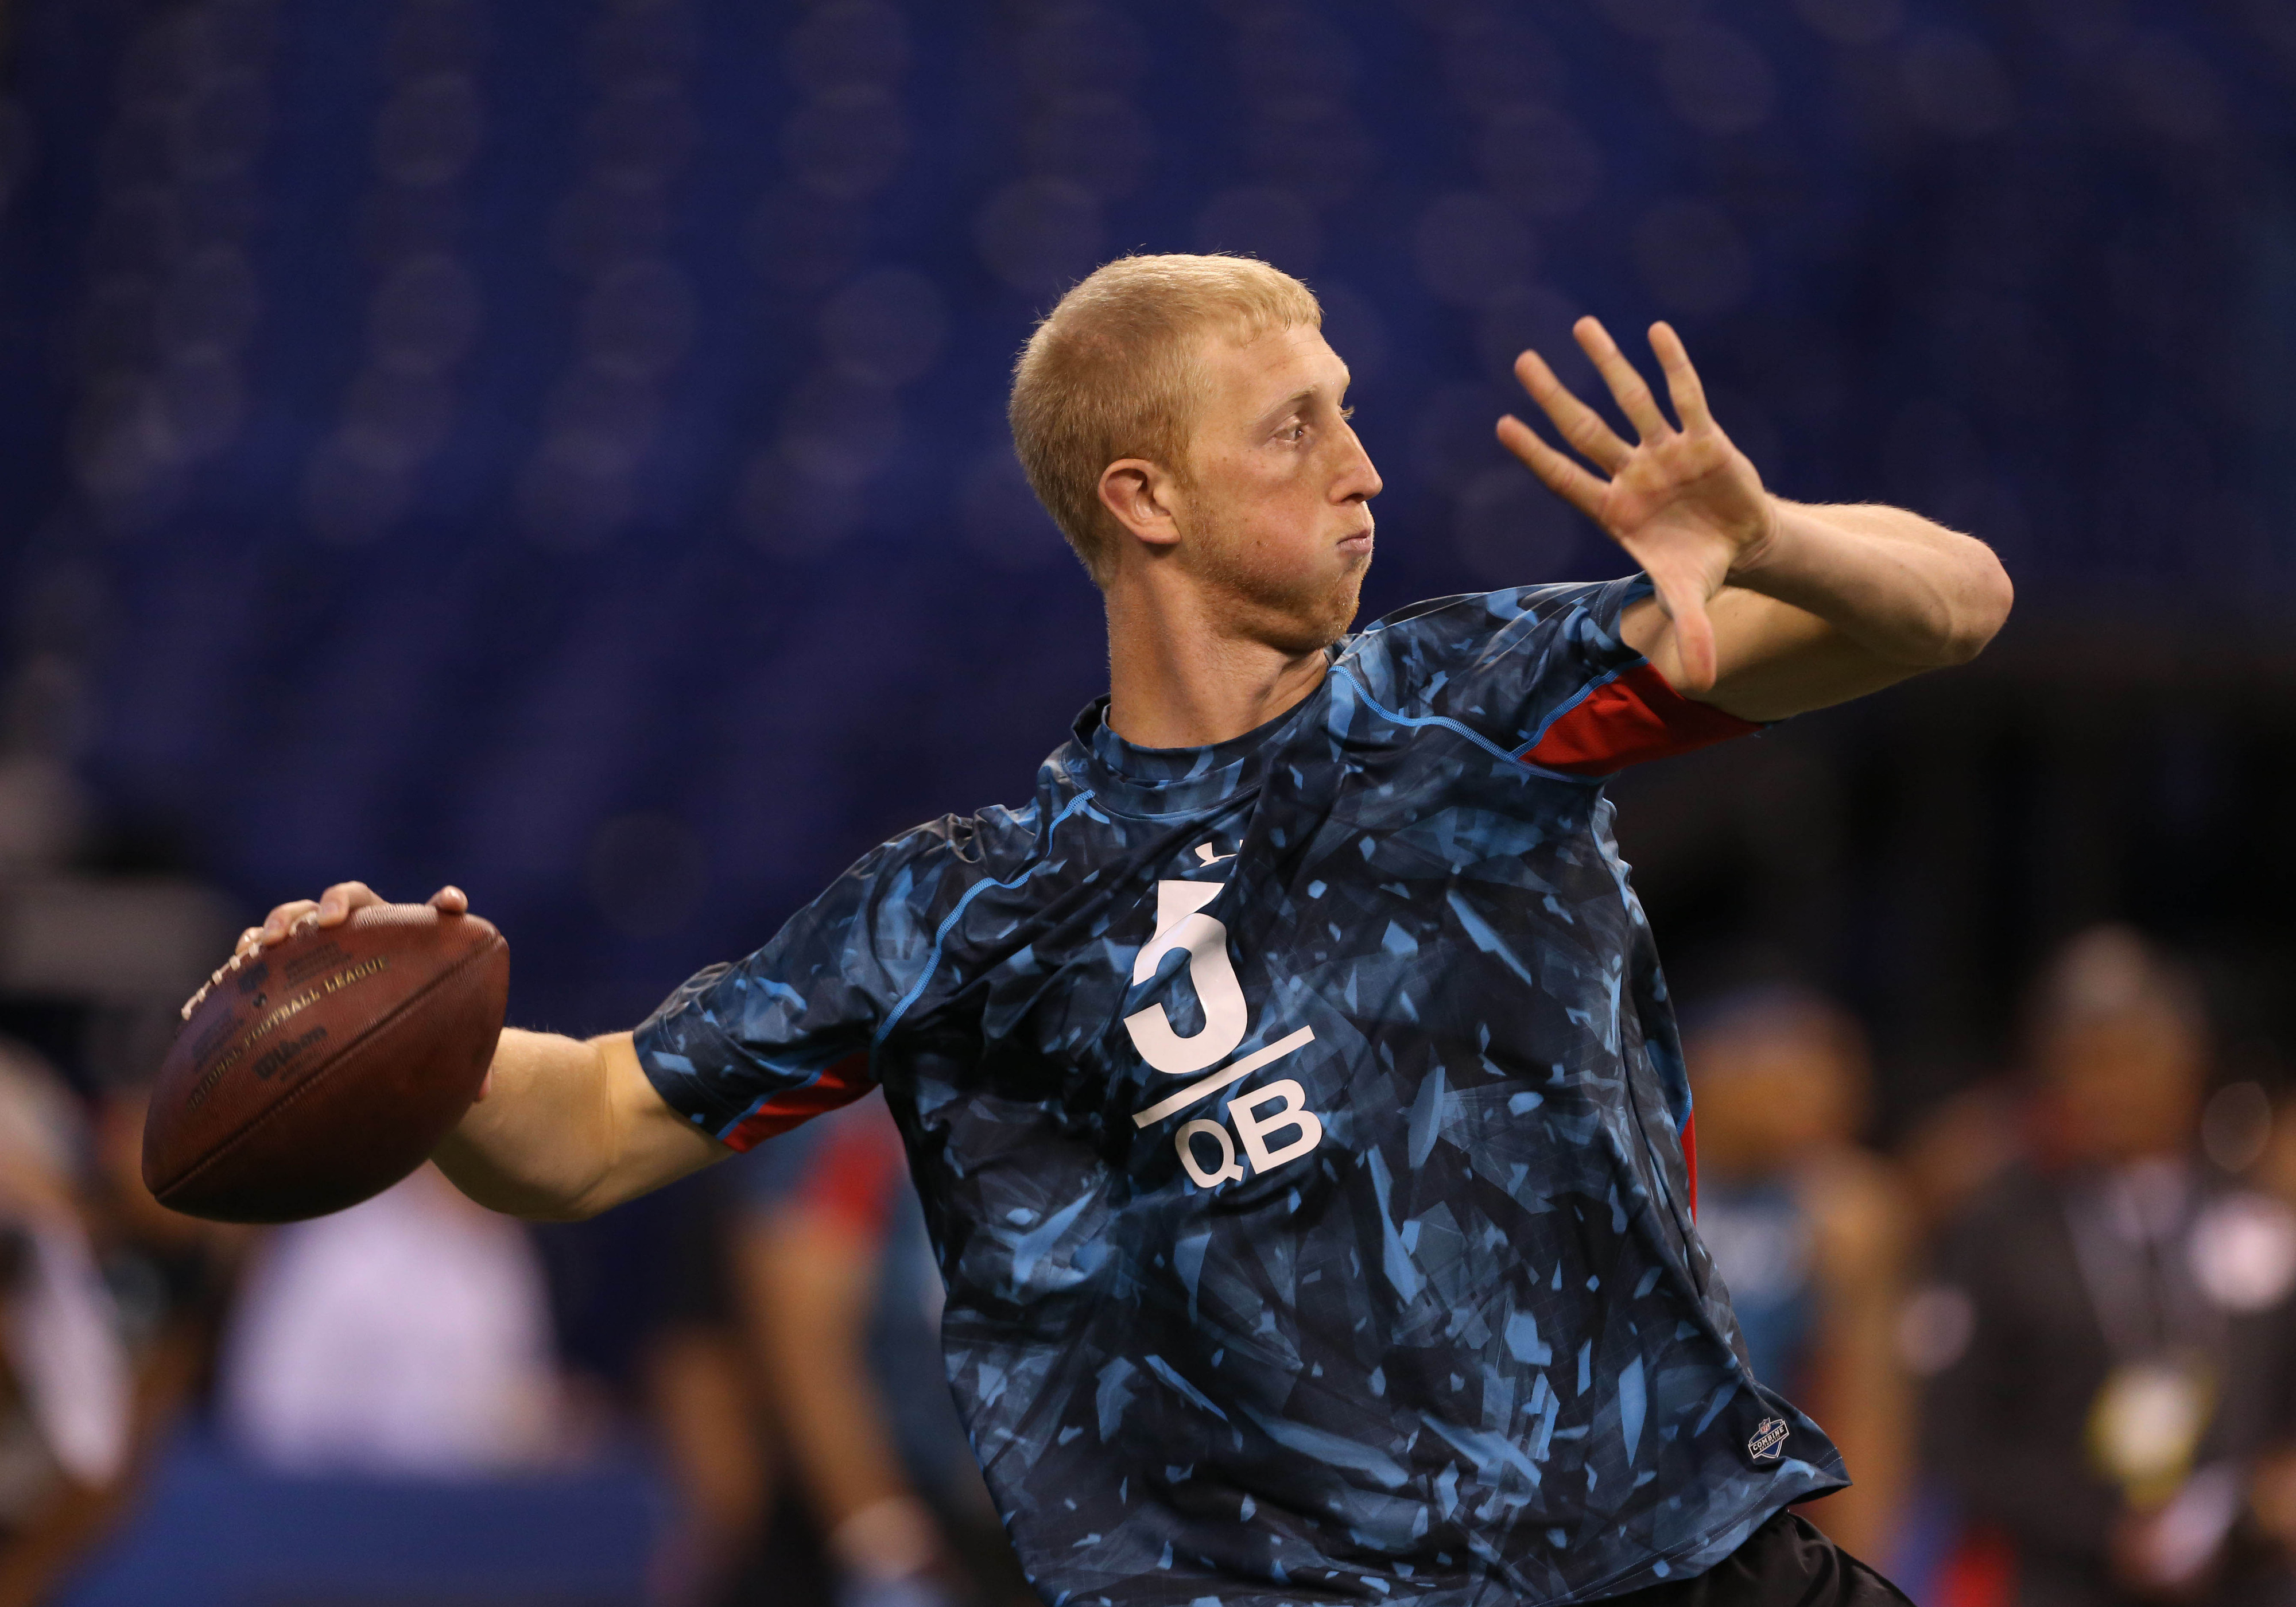 NFL Draft results 2013: Jets, Buccaneers and Cowboys make 3rd-round selections